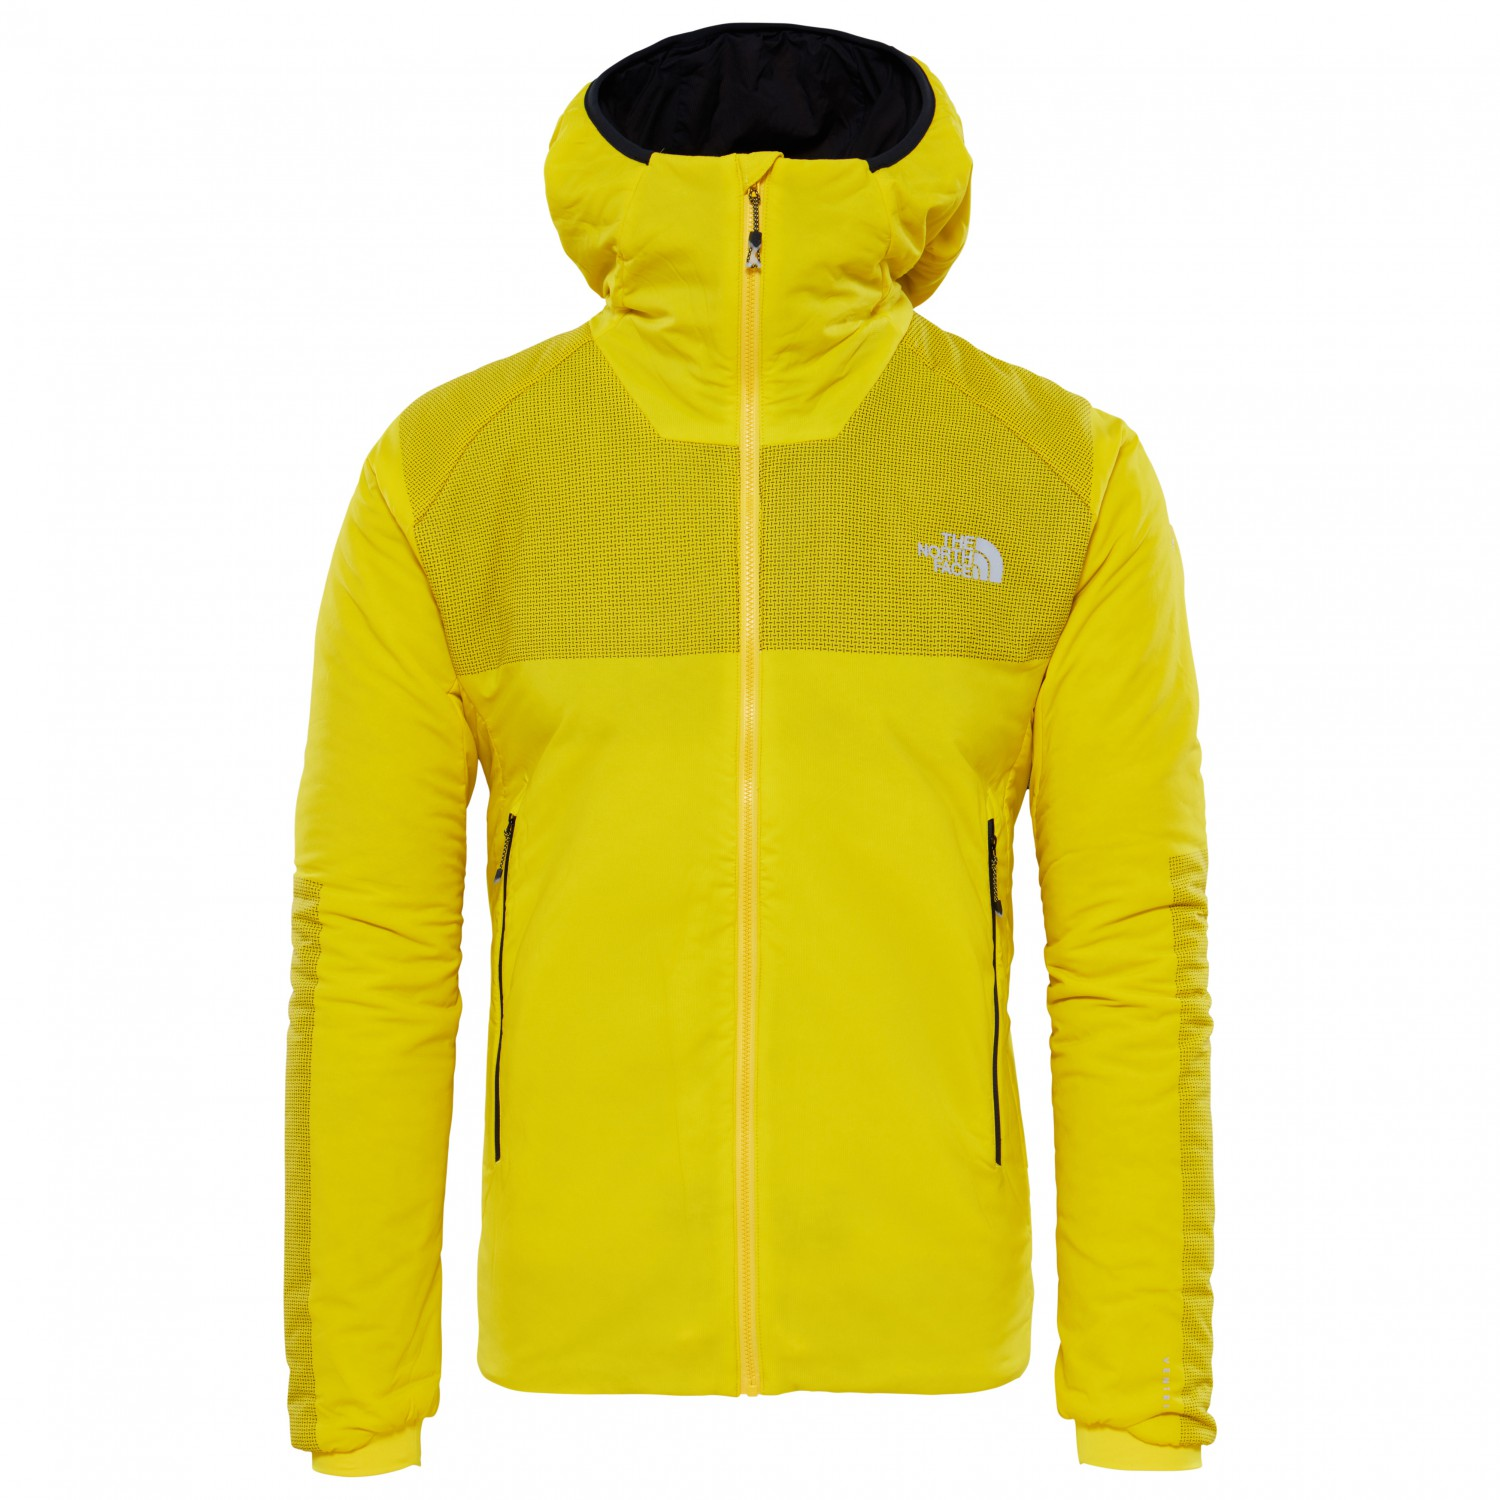 95f9c36e3d The North Face Summit L3 Ventrix Hoodie - Synthetic Jacket Men s ...